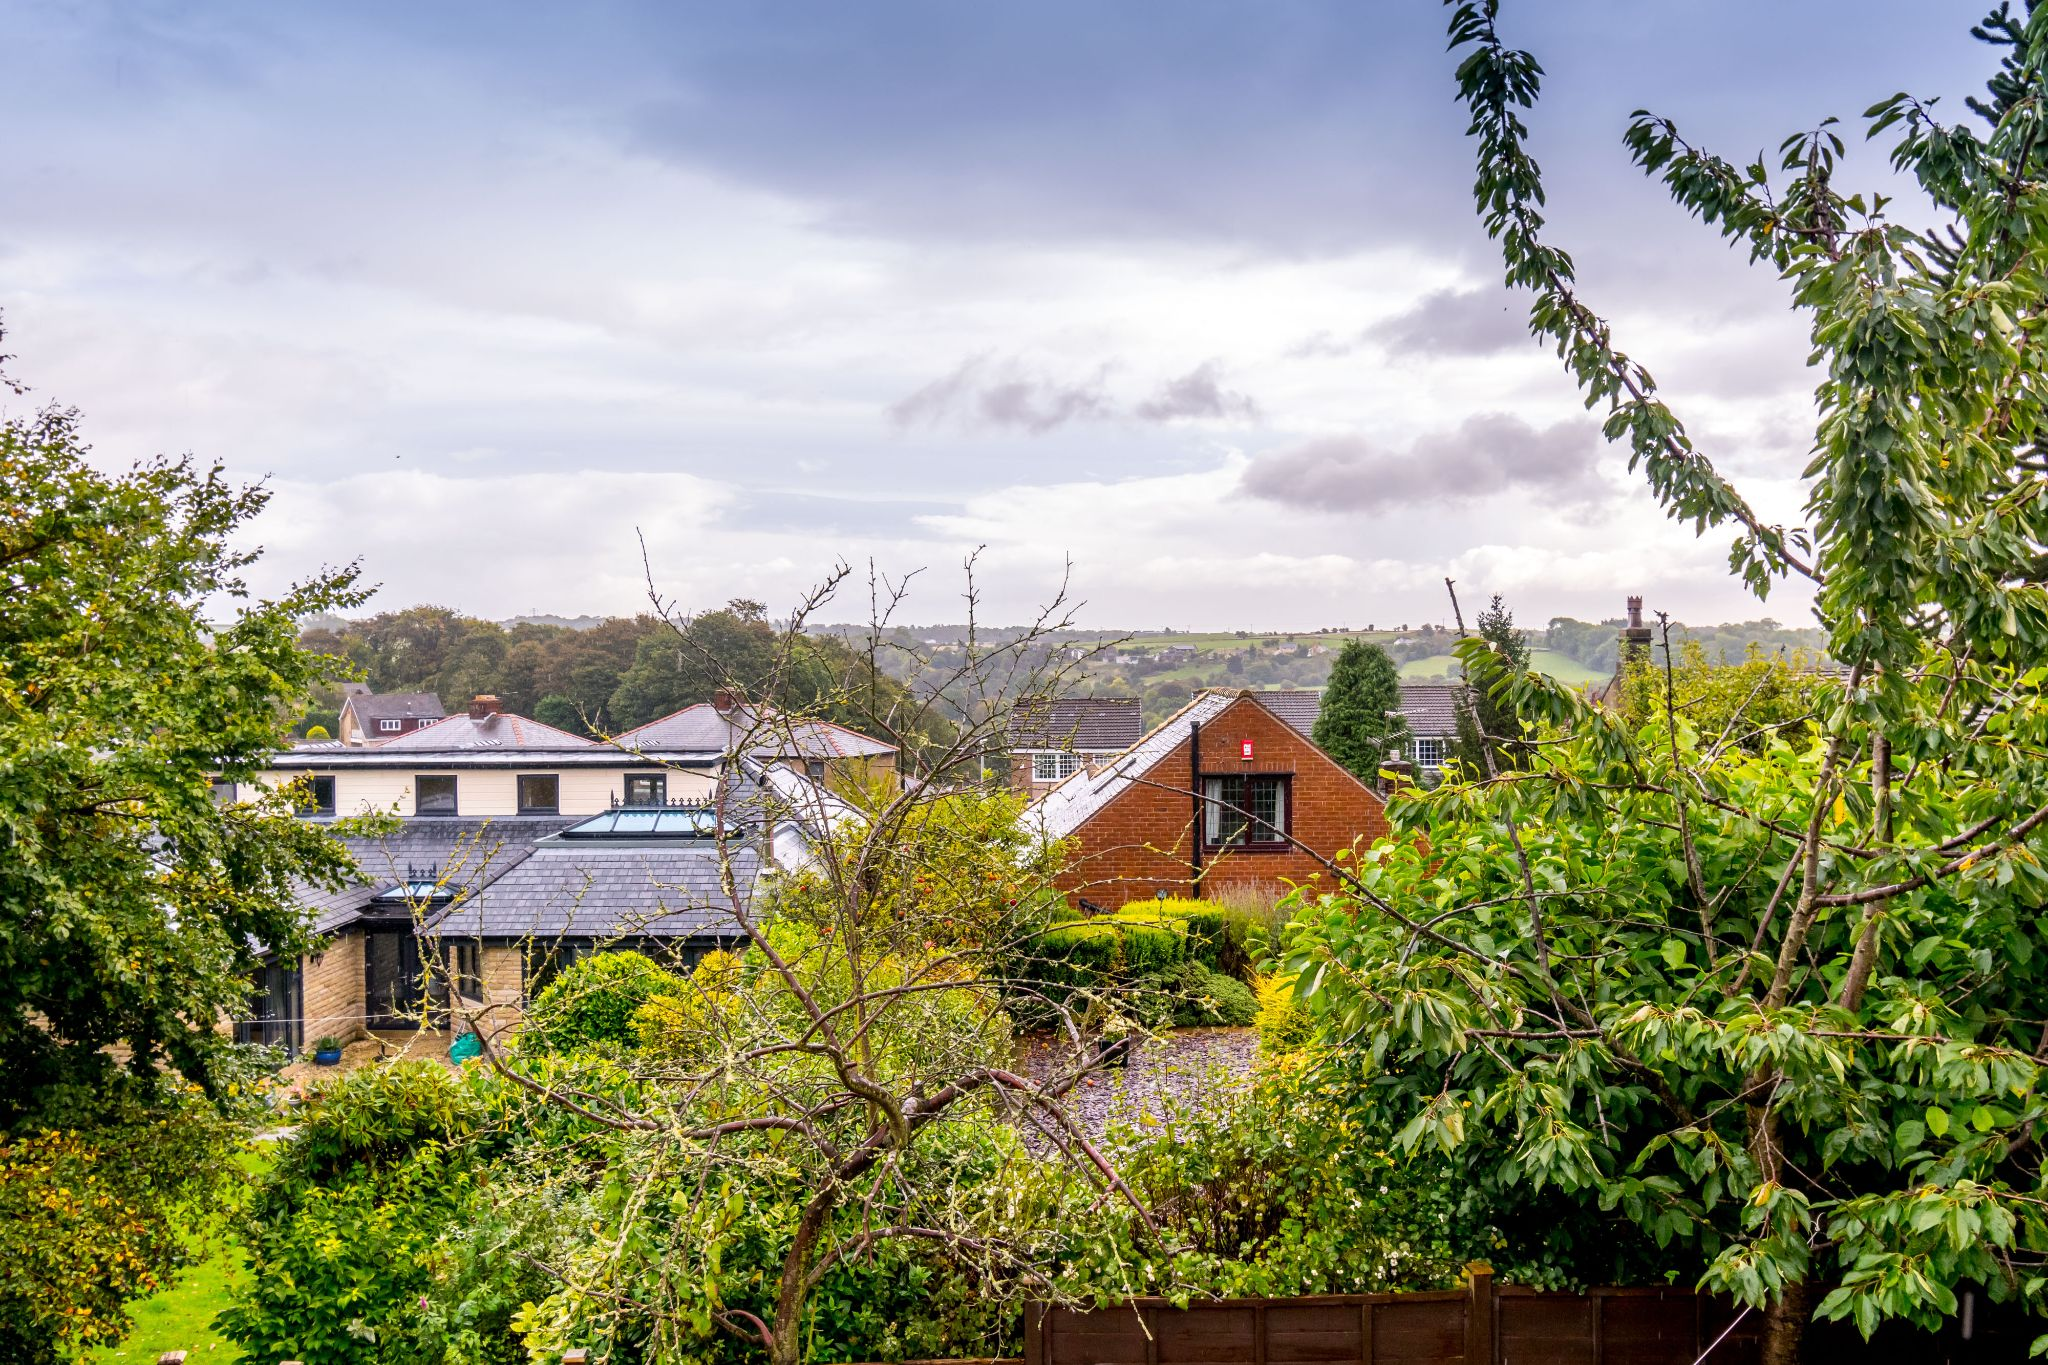 5 bedroom detached house SSTC in Brighouse - View from the rear garden